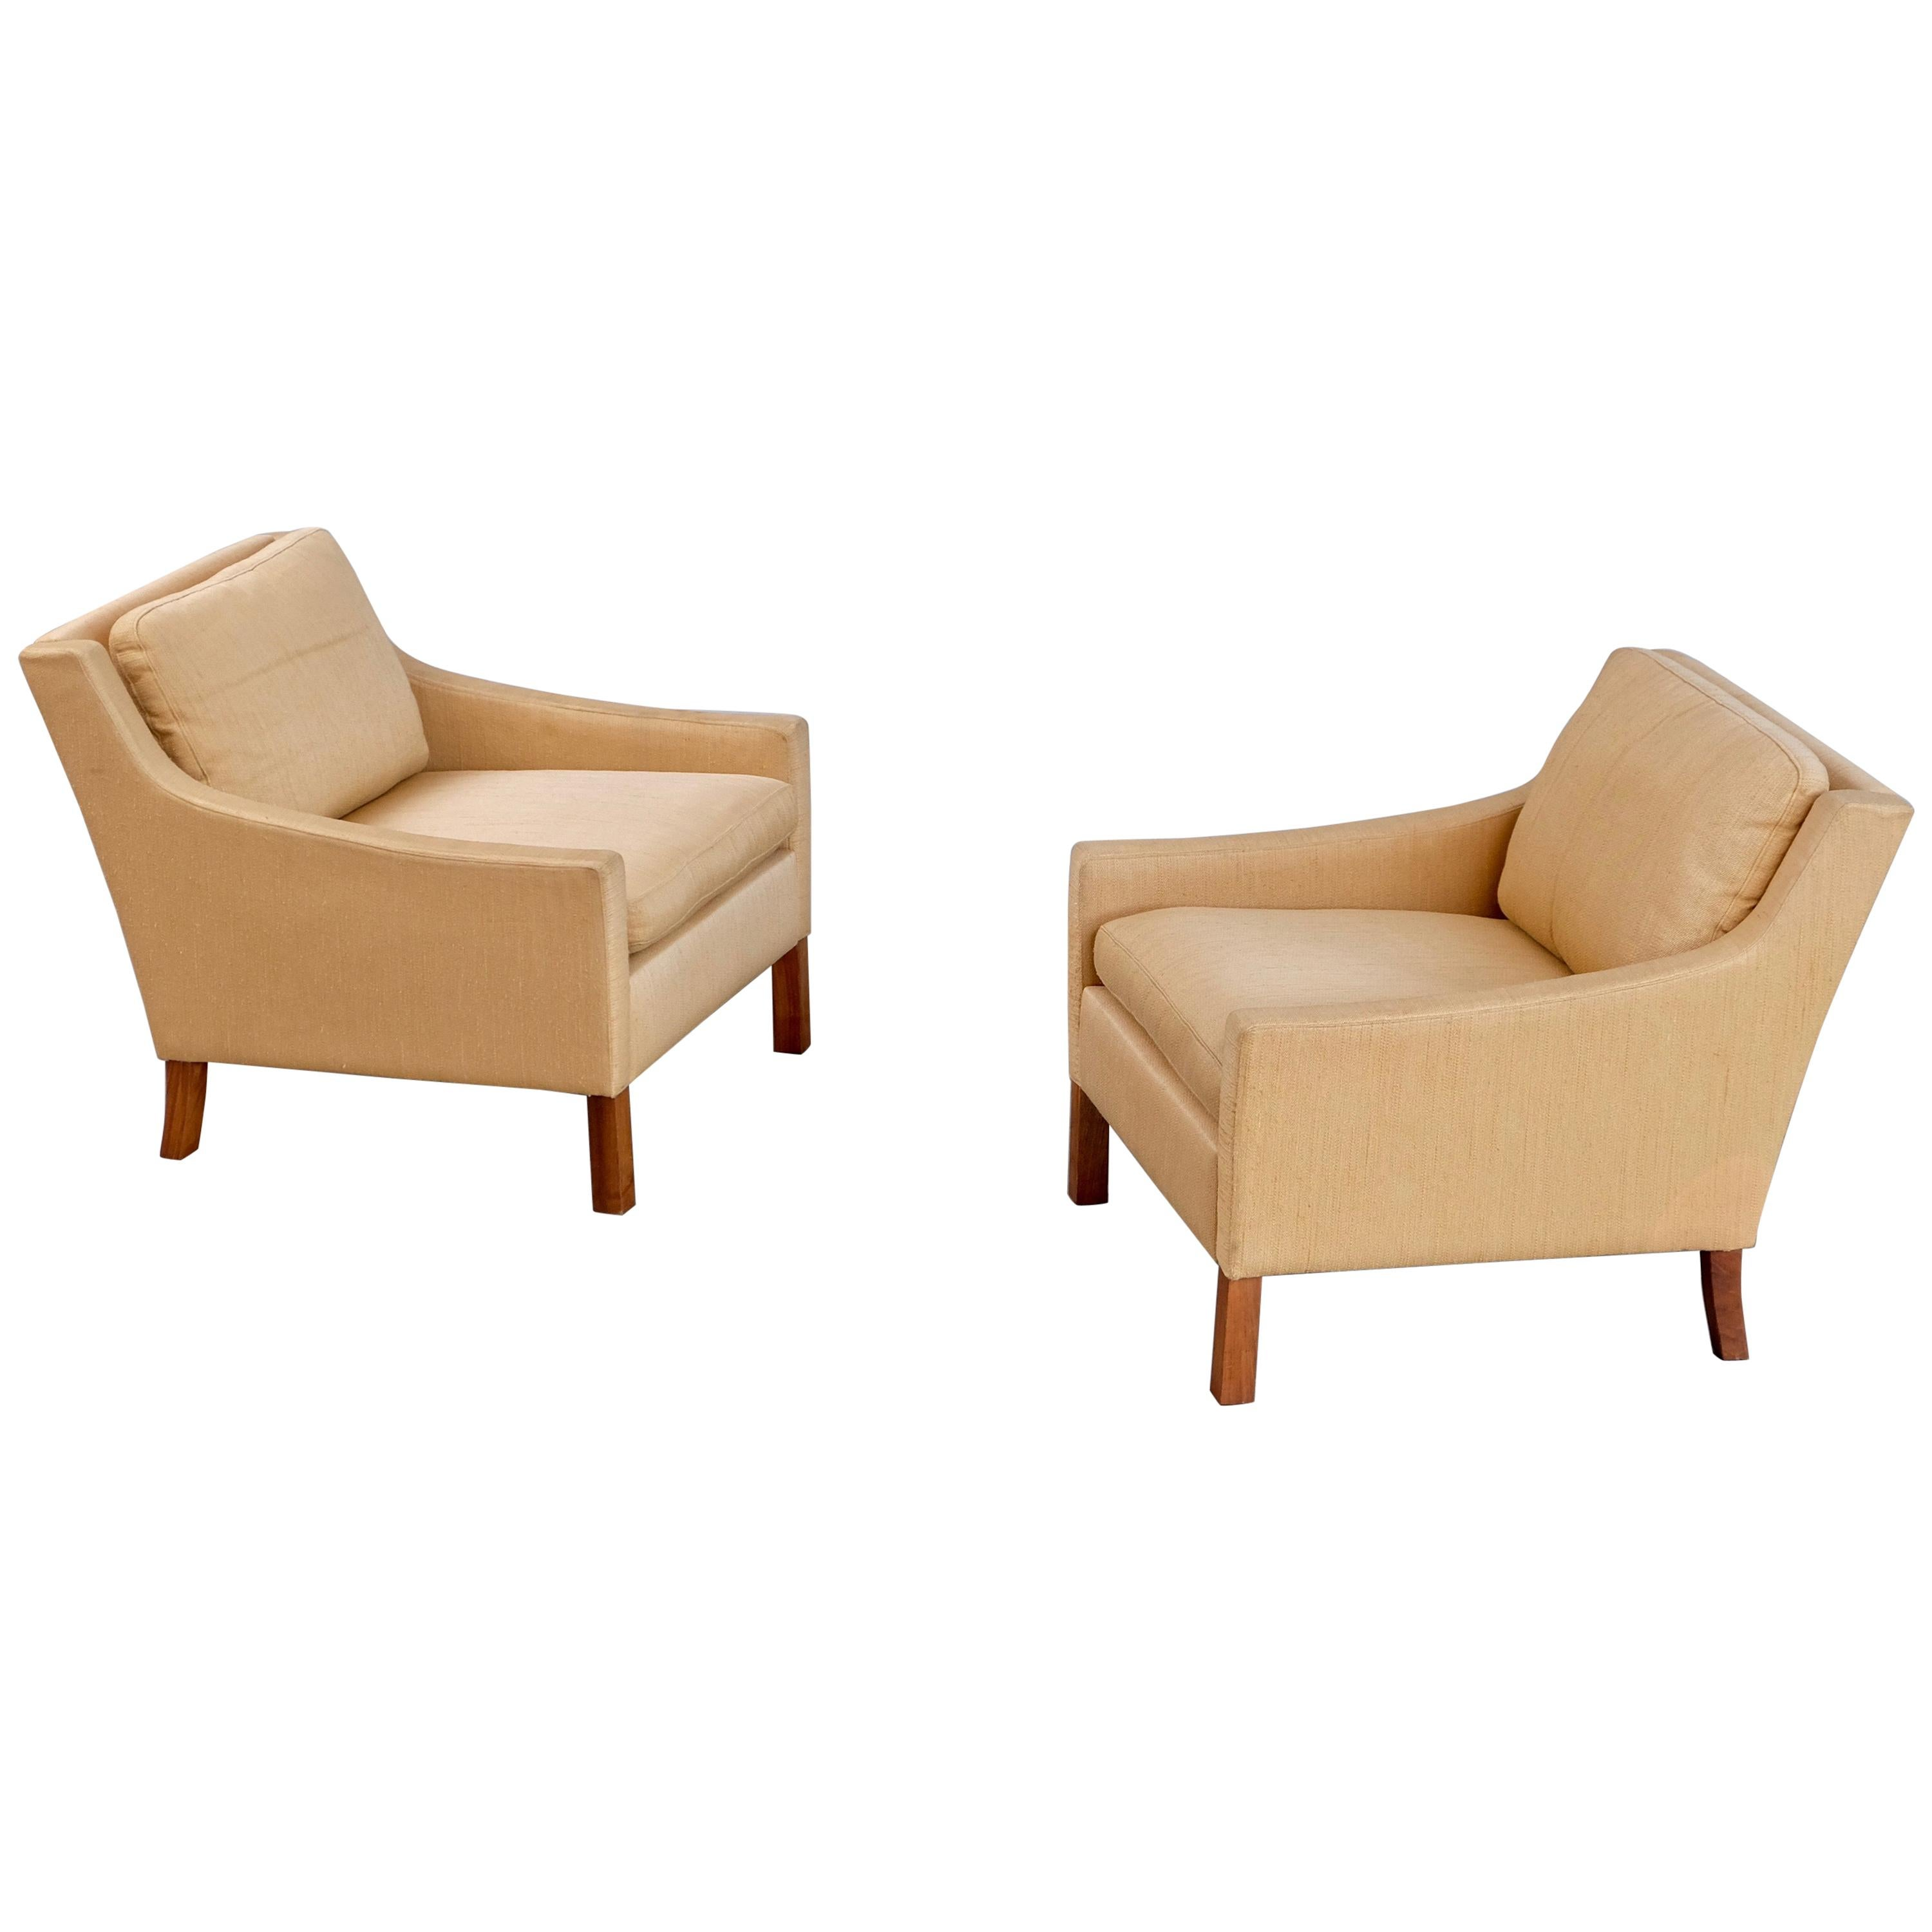 Pair of Ib Kofod-Larsen Easy Chairs by OPE, Sweden, 1960s